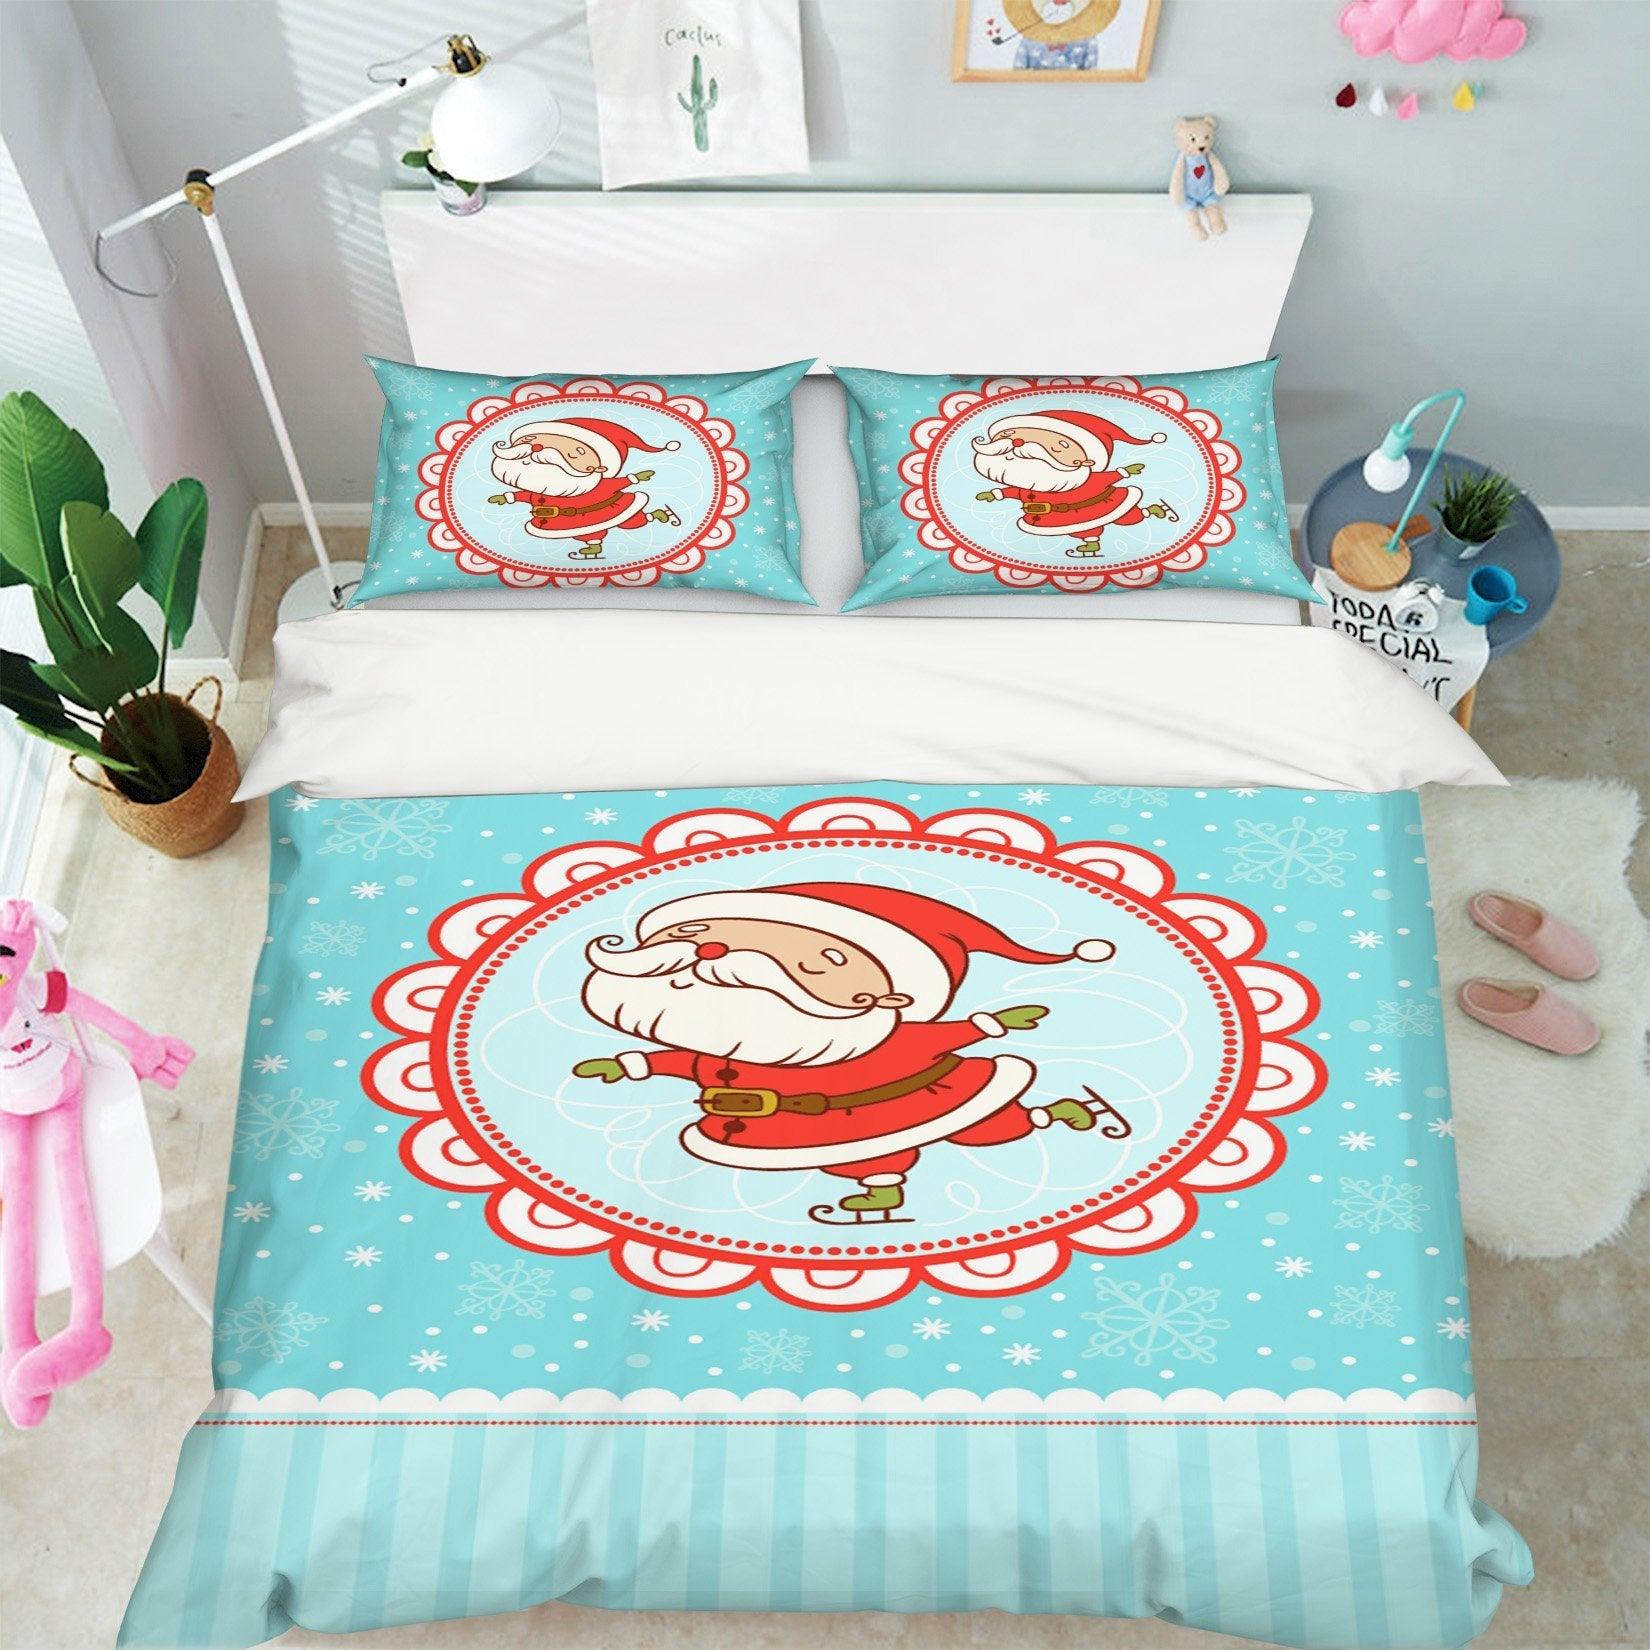 3D Christmas Lace White Beard 33 Bed Pillowcases Quilt Quiet Covers AJ Creativity Home